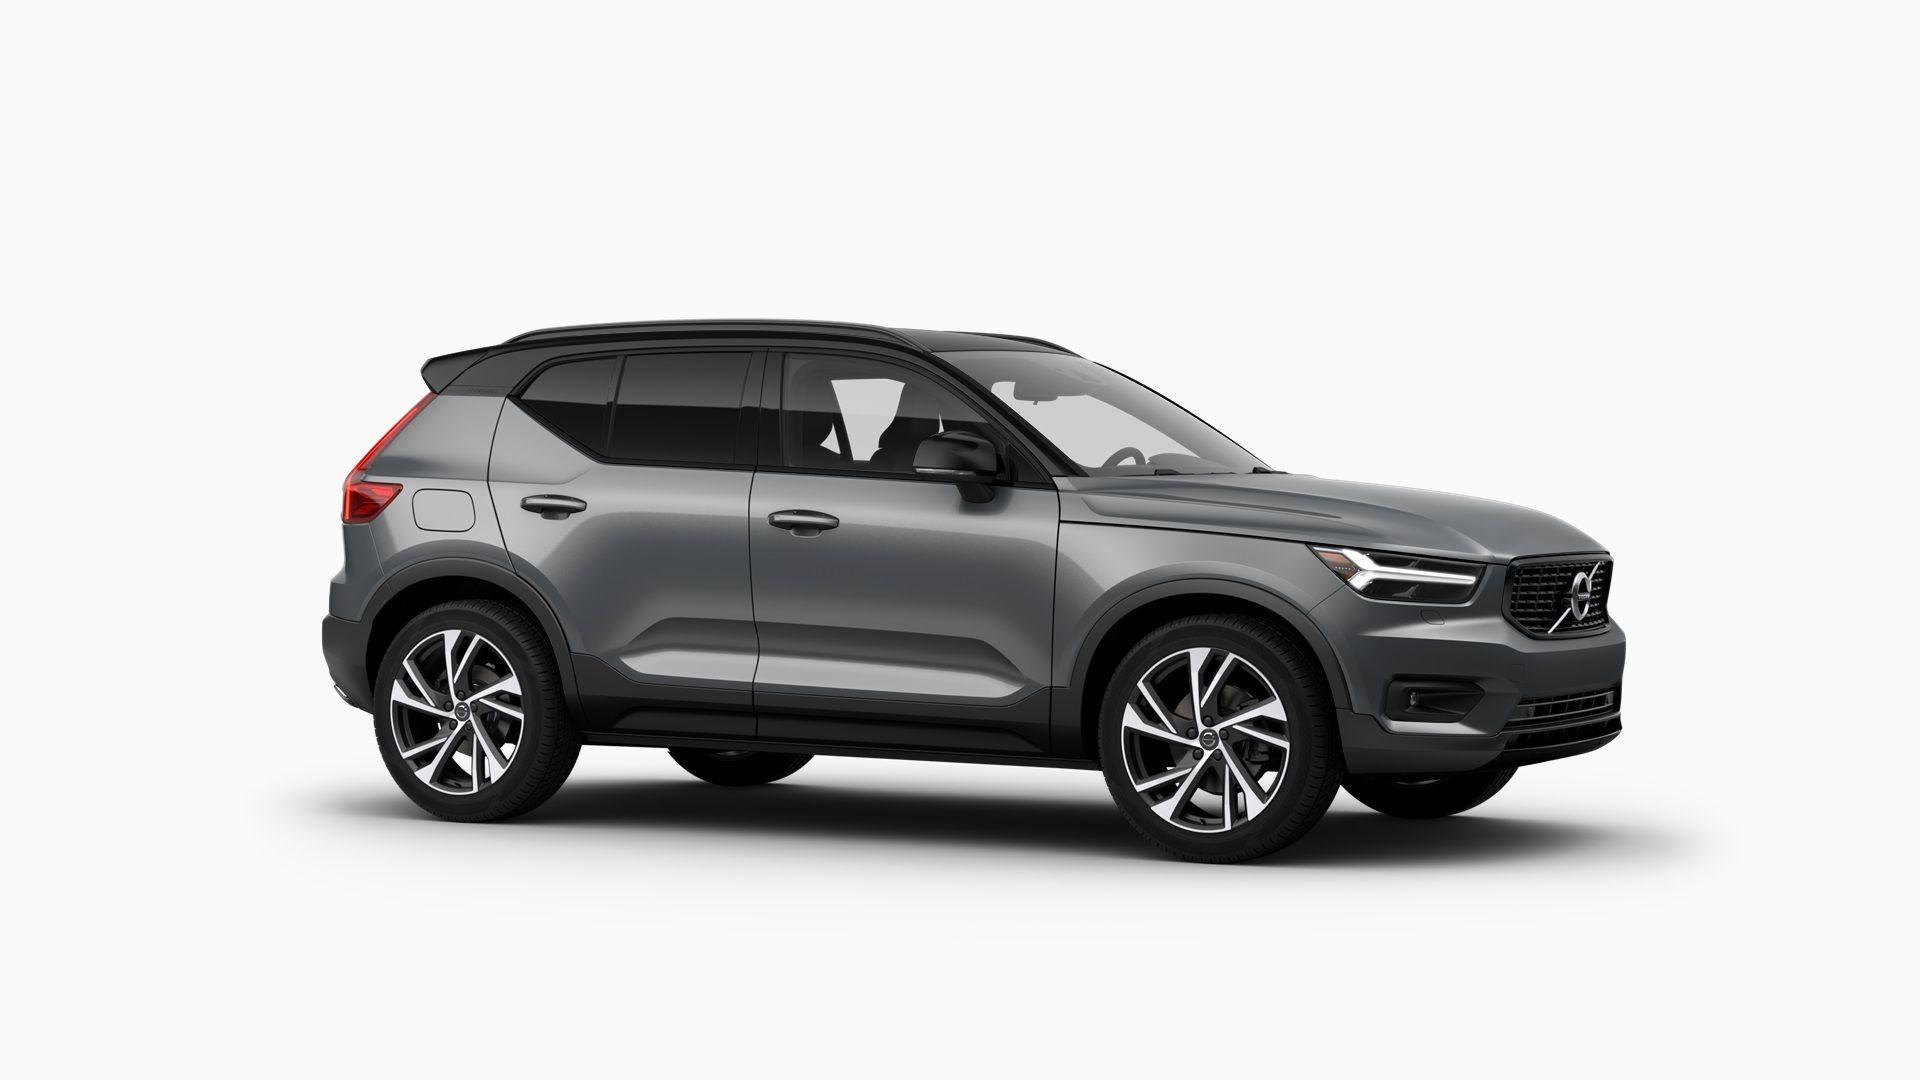 2018 Volvo R Design Xc40 42 280 Configured Volvo Cars Volvo Suv